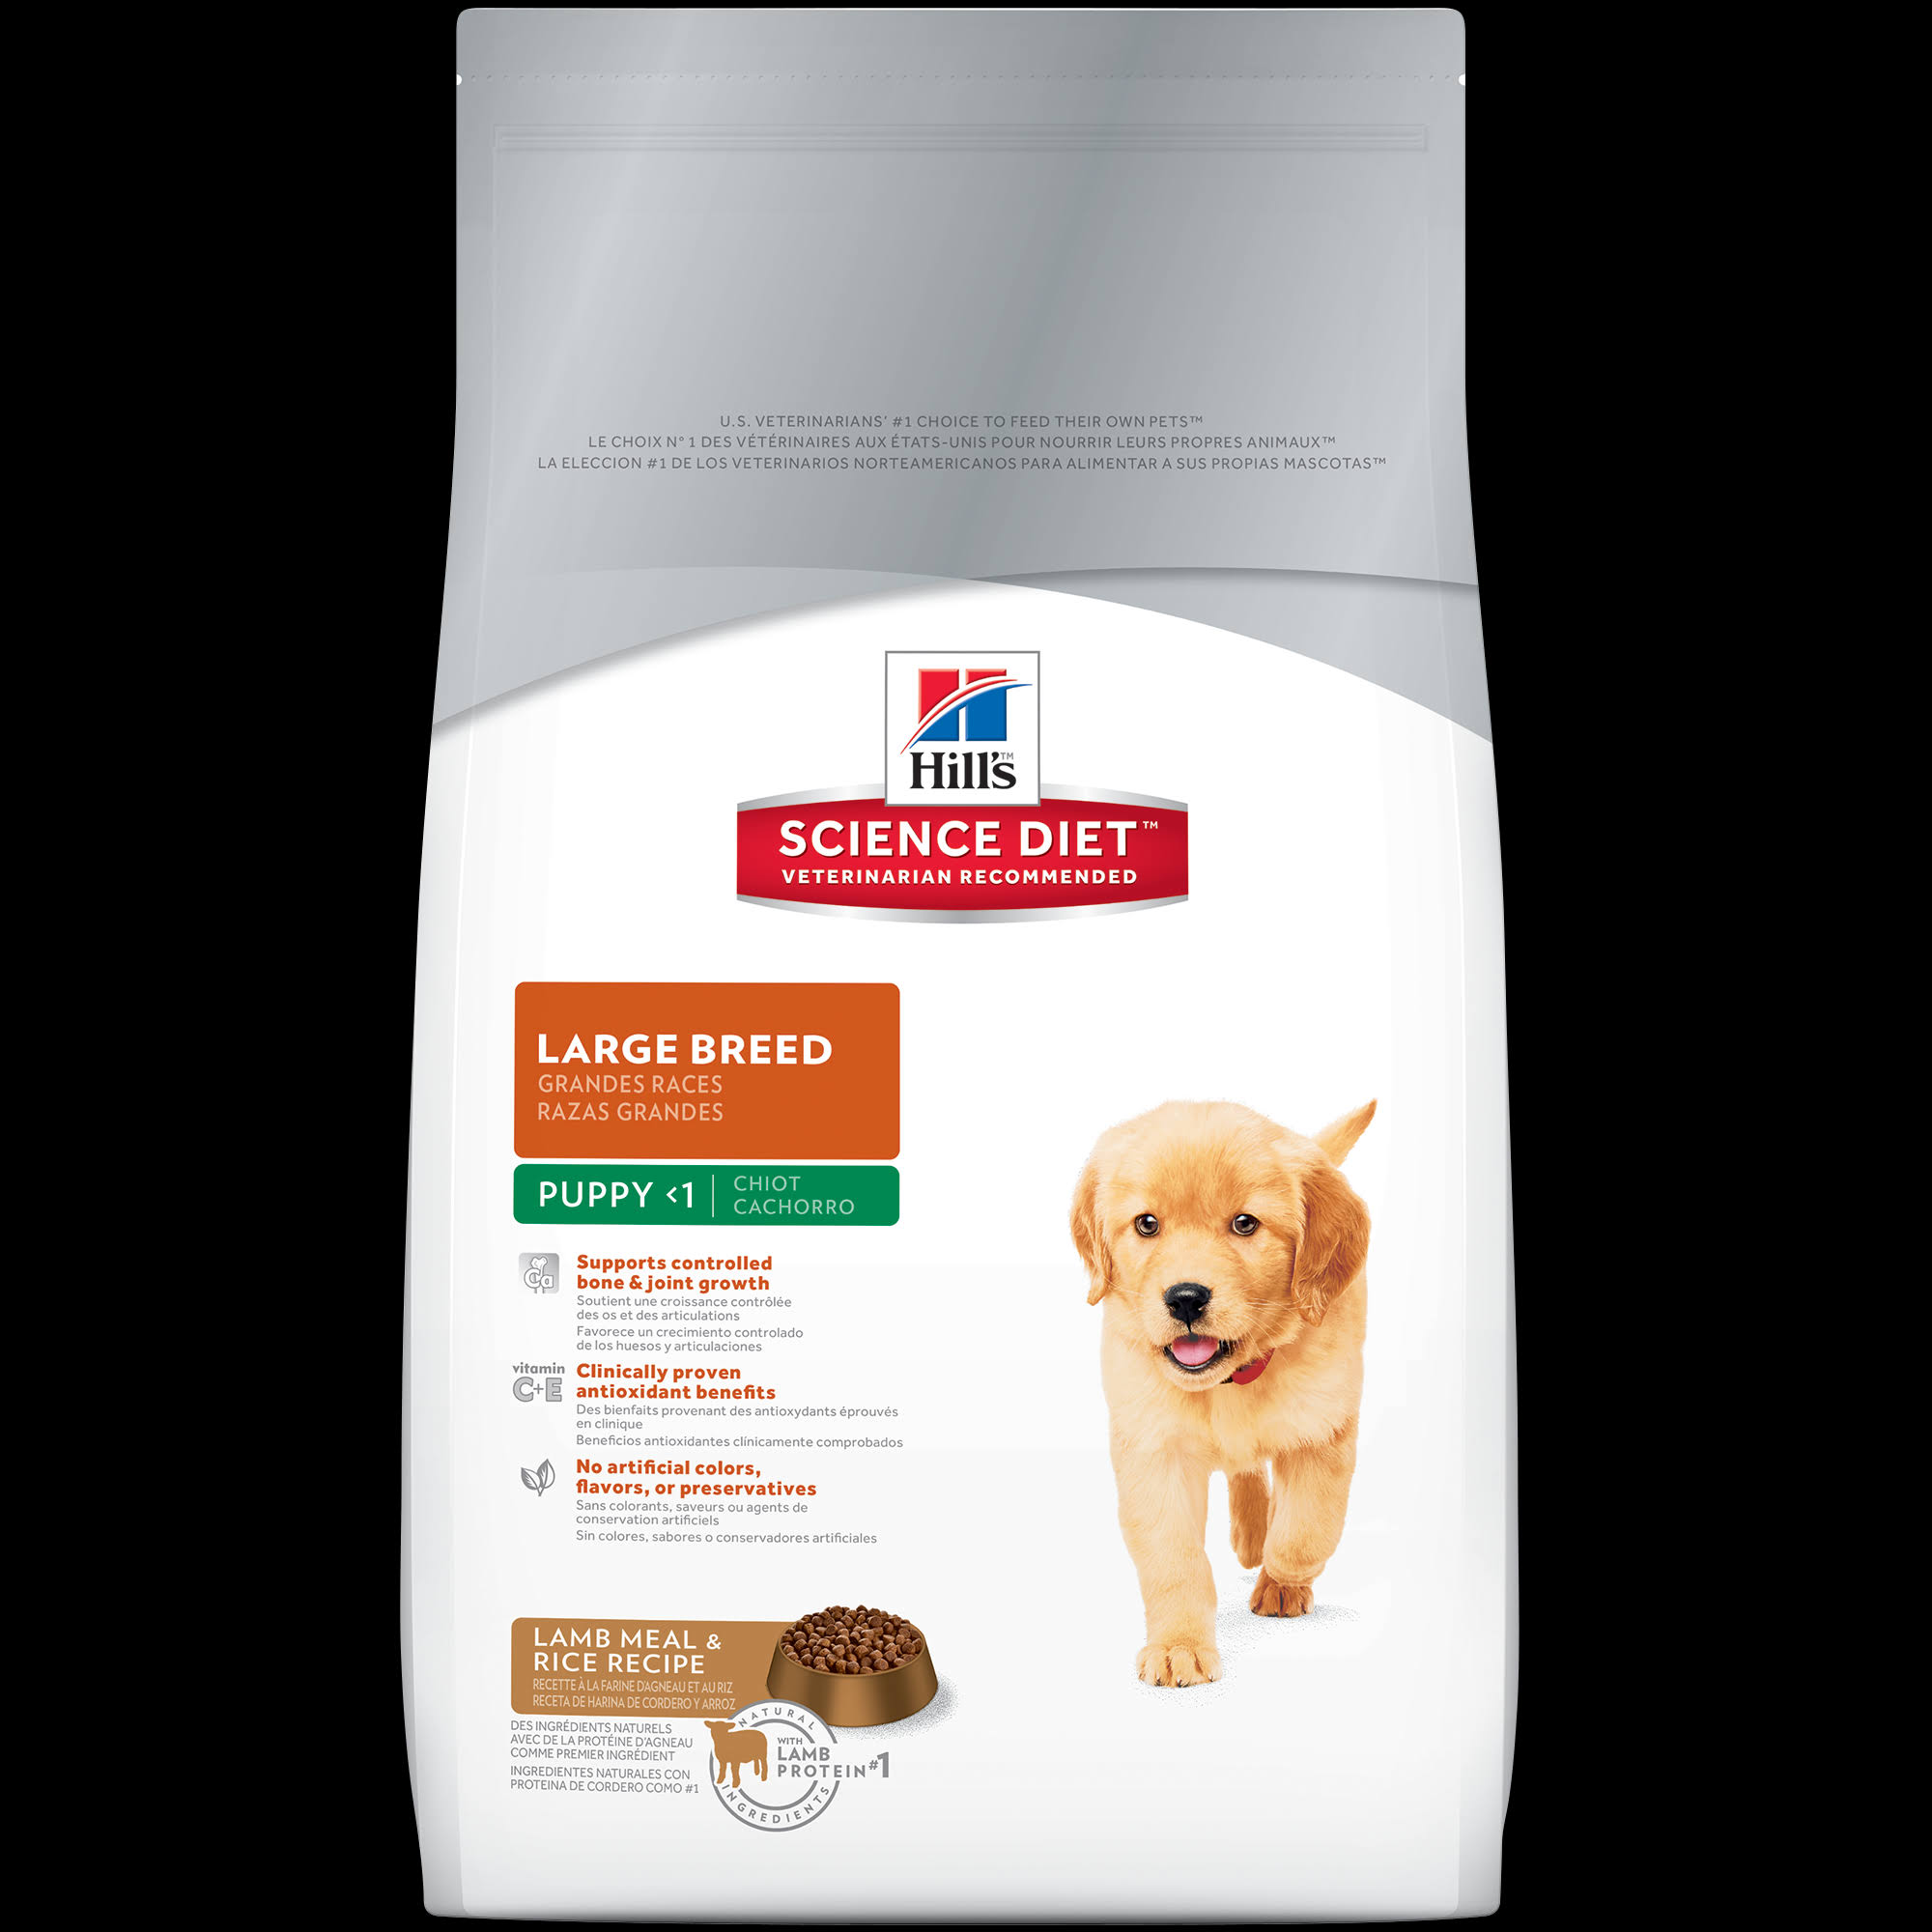 Hill's Science Diet Puppy <1 Large Breed Lamb Meal & Rice Recipe Premium Natural Dog Food - 33 lb